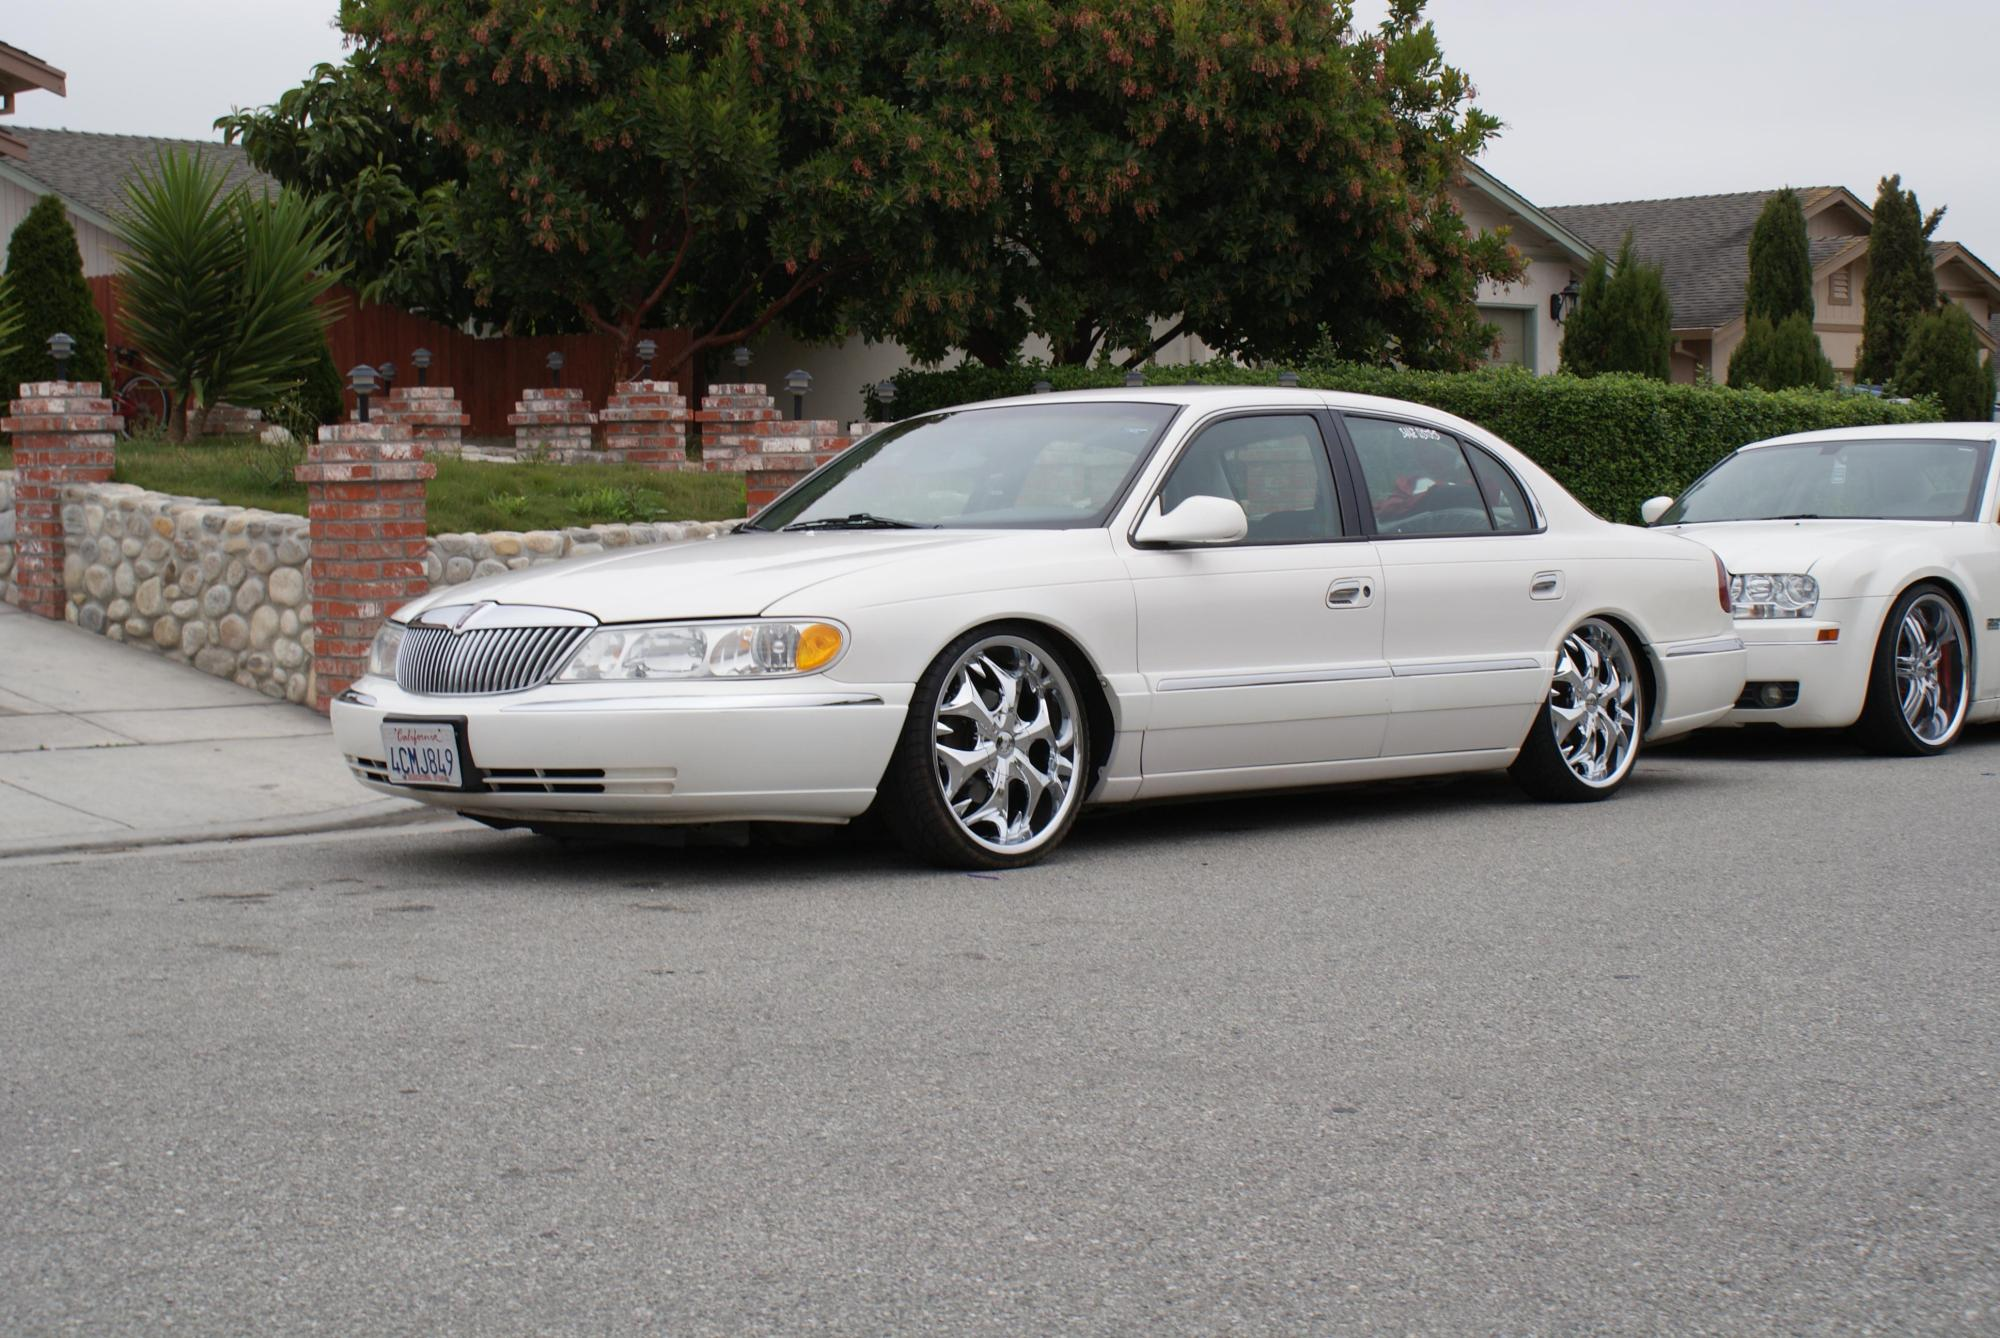 hight resolution of  stnklincoln 1998 lincoln continental 38375810001 original